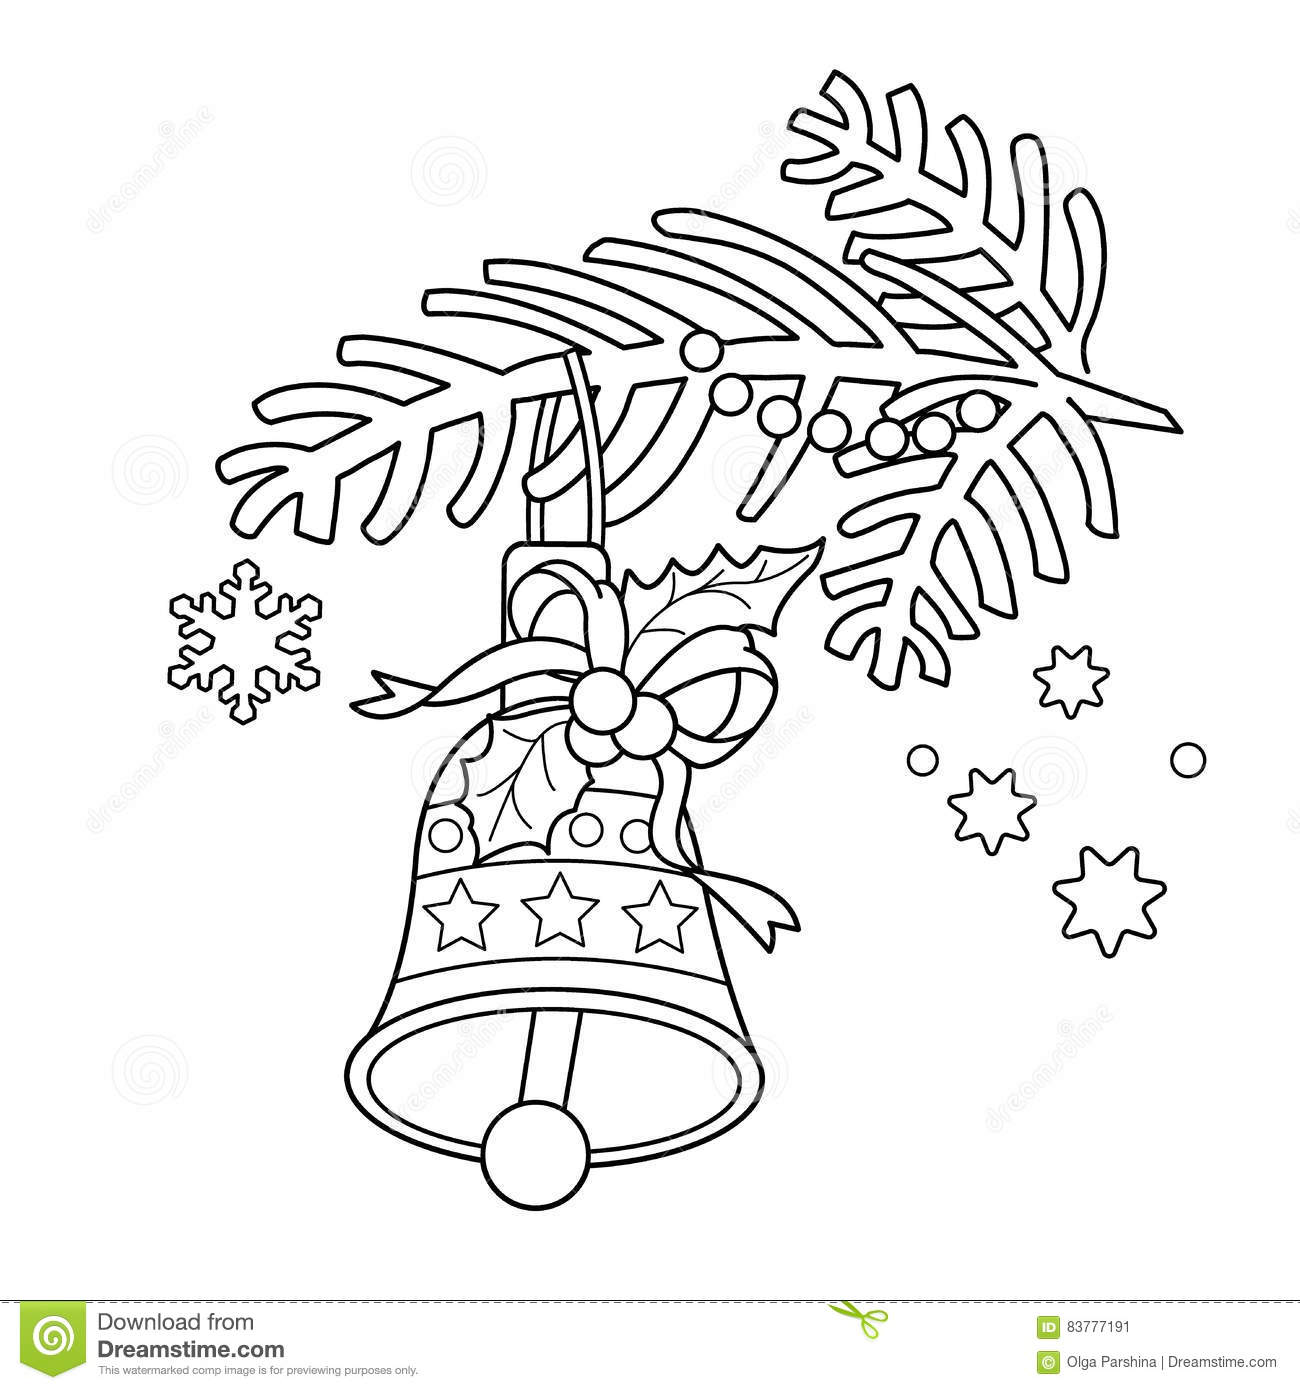 Coloring pages tree branch ~ Coloring Page Outline Of Christmas Bell. Christmas Tree ...